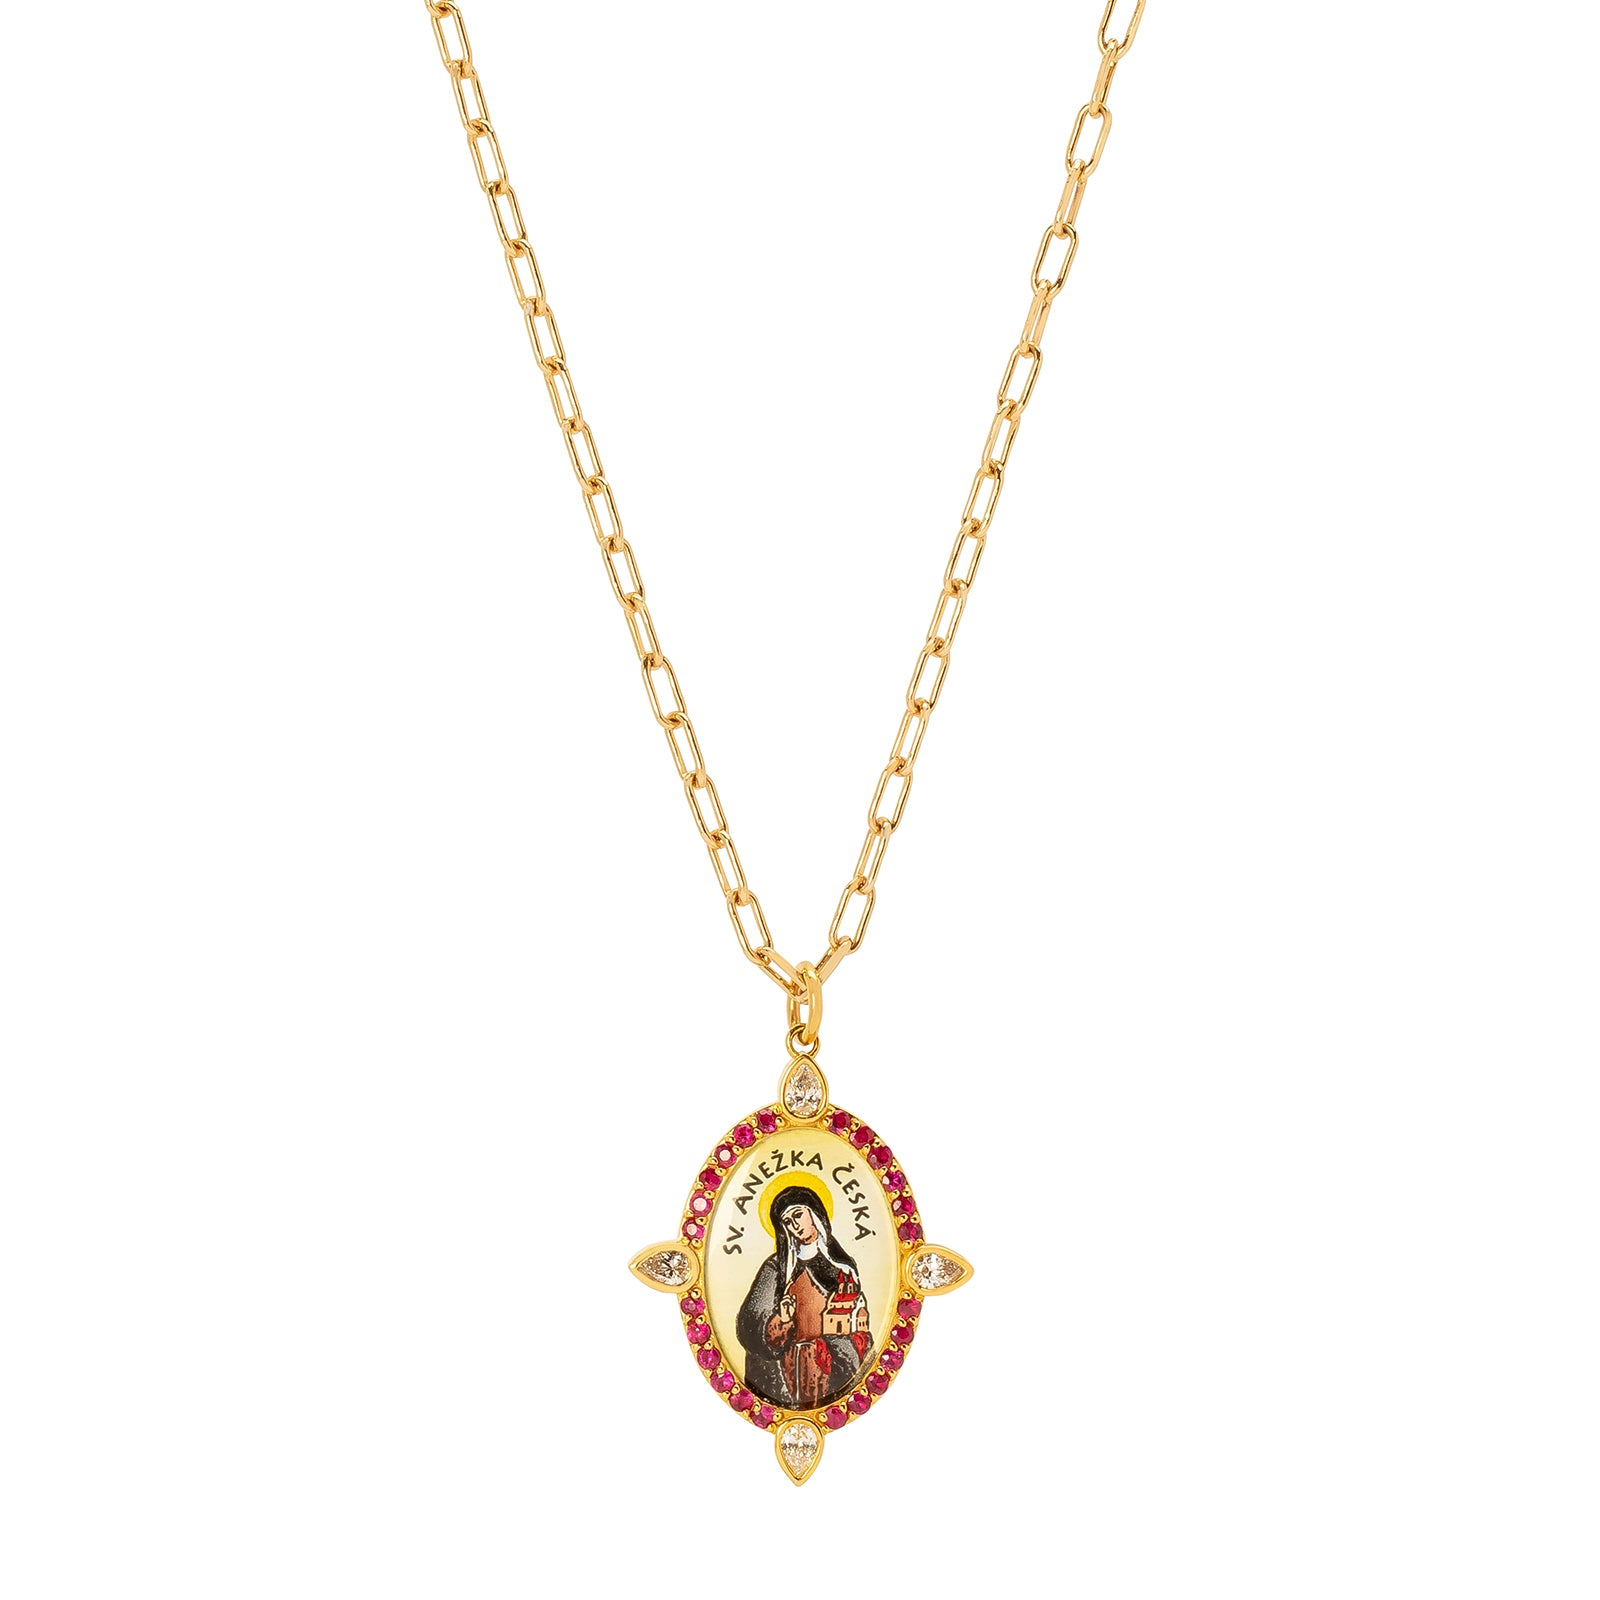 Colette ANESKA Pendant Necklace - Necklaces - Broken English Jewelry